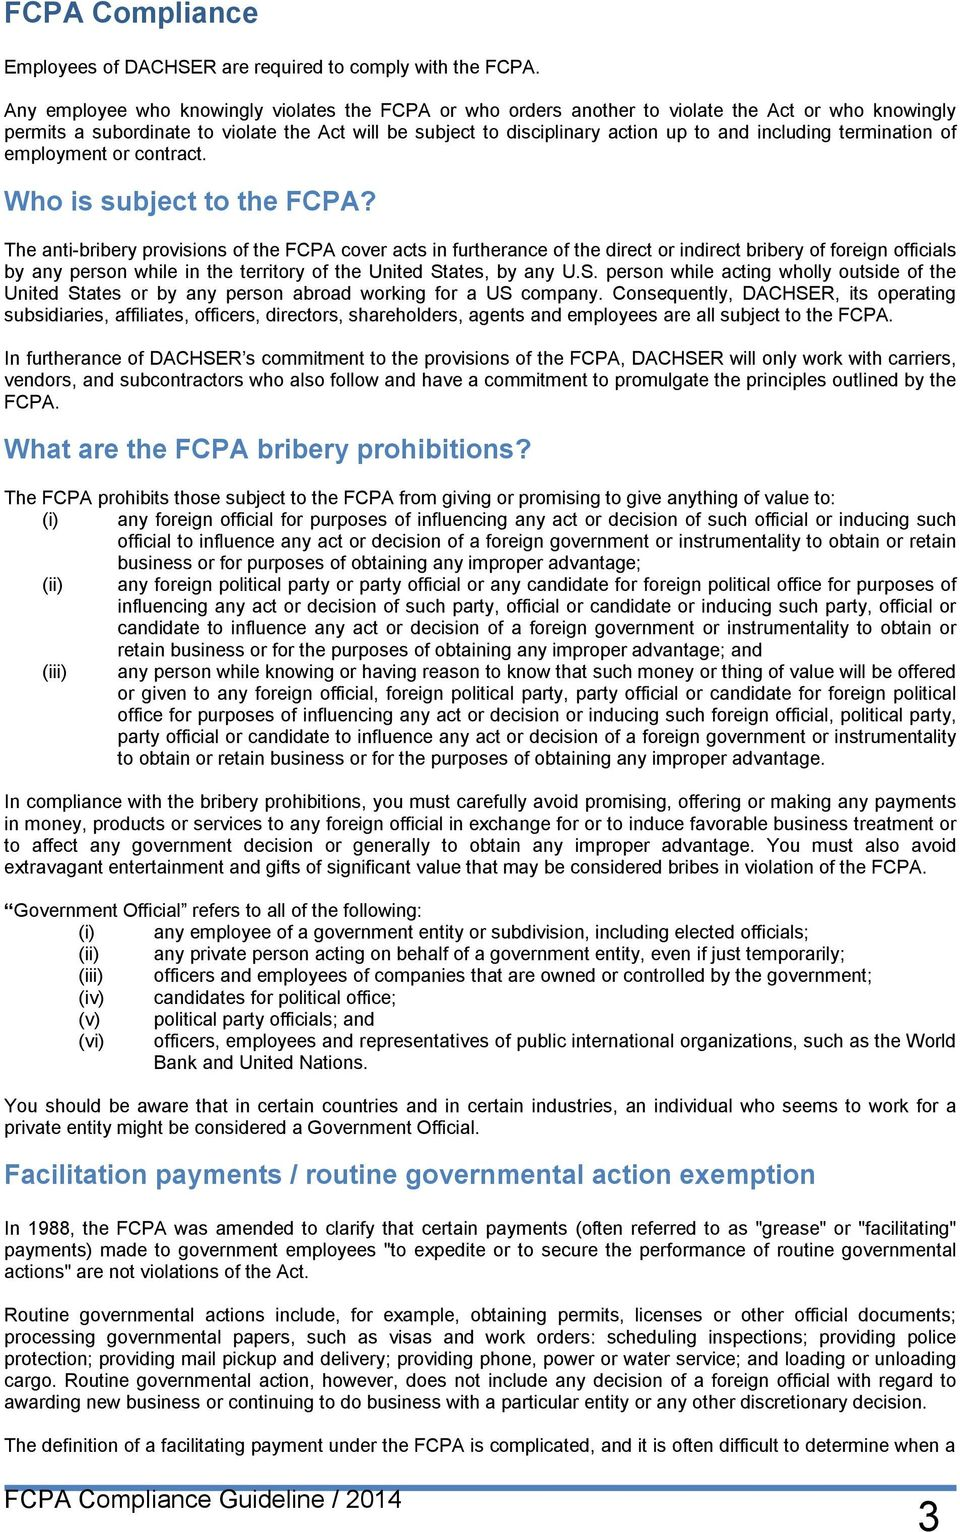 including termination of employment or contract. Who is subject to the FCPA?